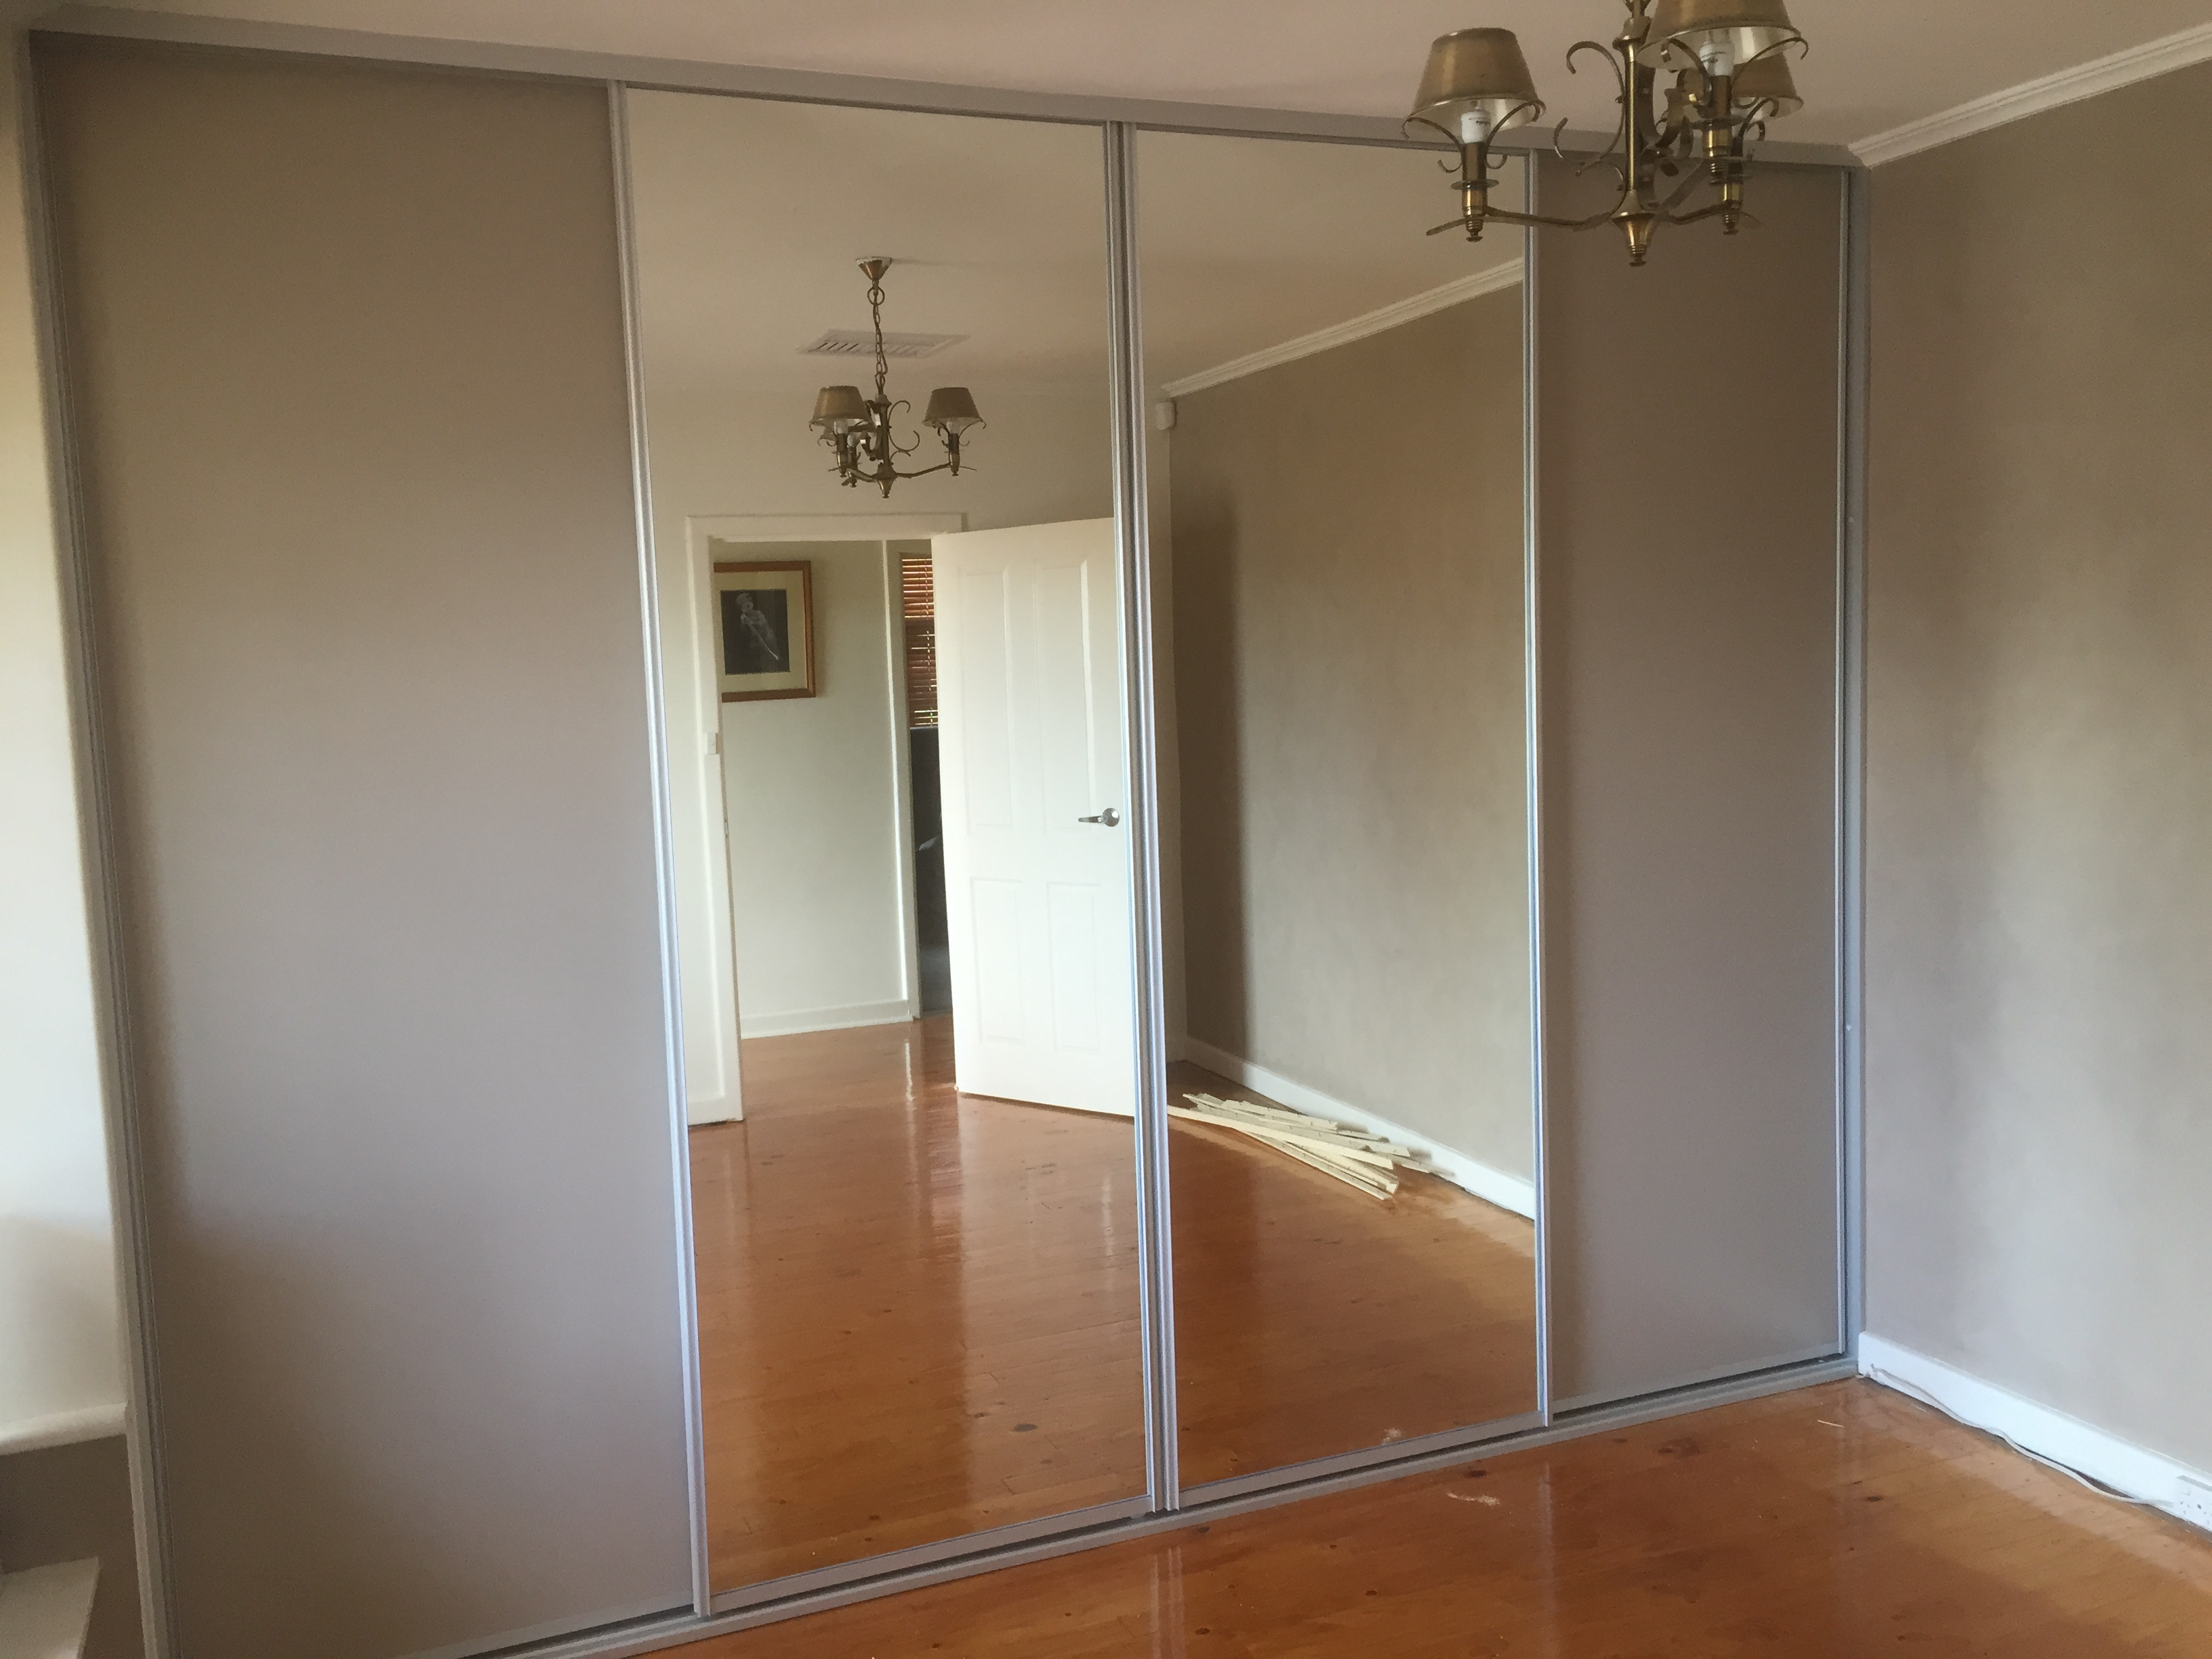 Bedrooms Image Robes Adelaide Built In Robes Sliding